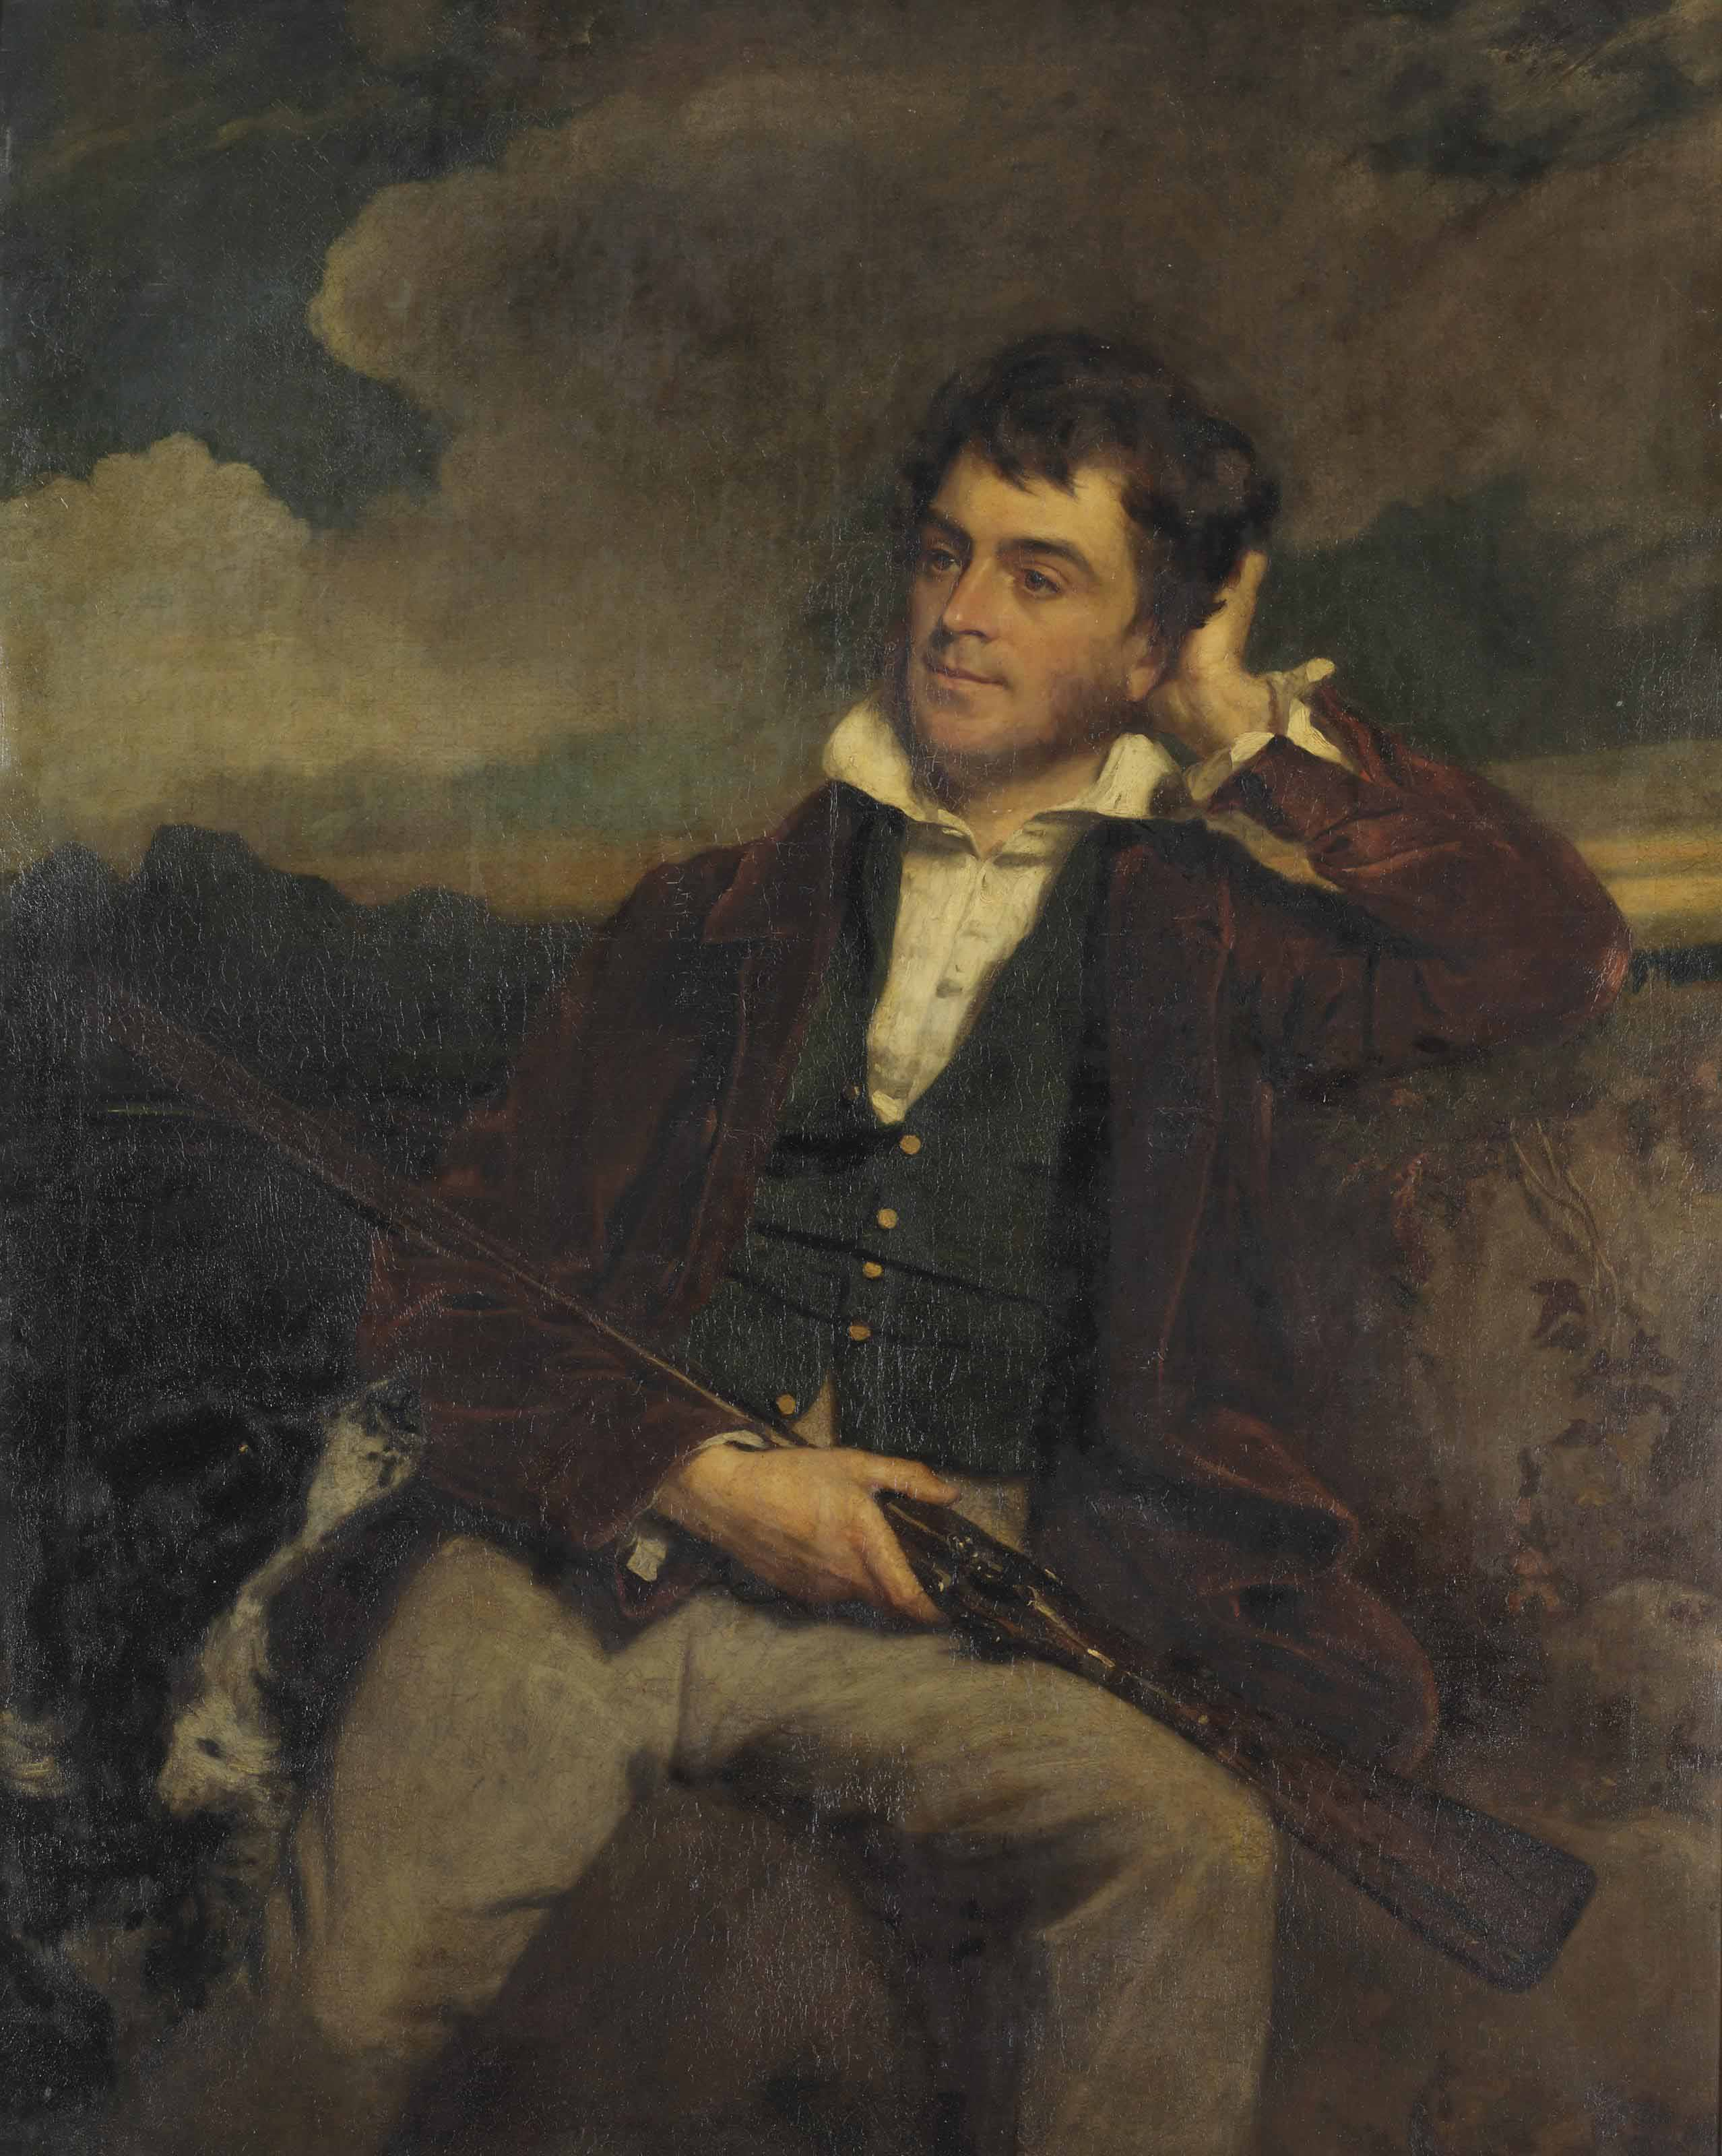 Portrait of a gentleman in a landscape, with a shotgun and a Springer Spaniel at his side